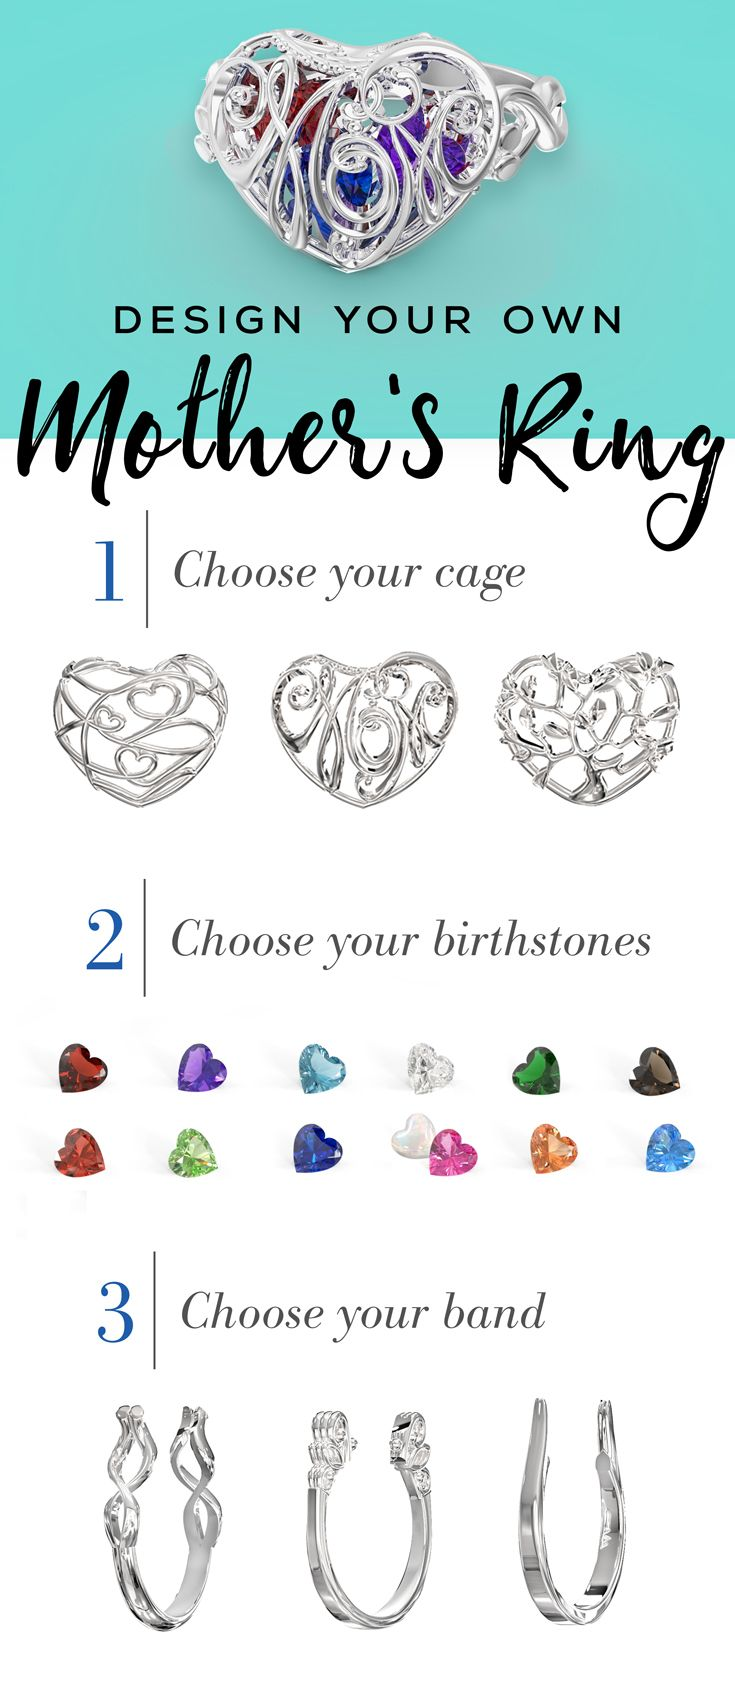 Create the perfect gift for Mom for Mother's Day, her birthday or any special occasion! A stunning 3D heart cage is filled with sparkling birthstones to represent her loved ones, making this a truly unique mother's ring. Personalize this ring with your choice of cage, band, metal and birthstones. You can even add an engraving for a heartfelt finish. Free shipping, free resizing, free returns and a free gift with purchase on all custom-made jewelry at Jewlr.com!